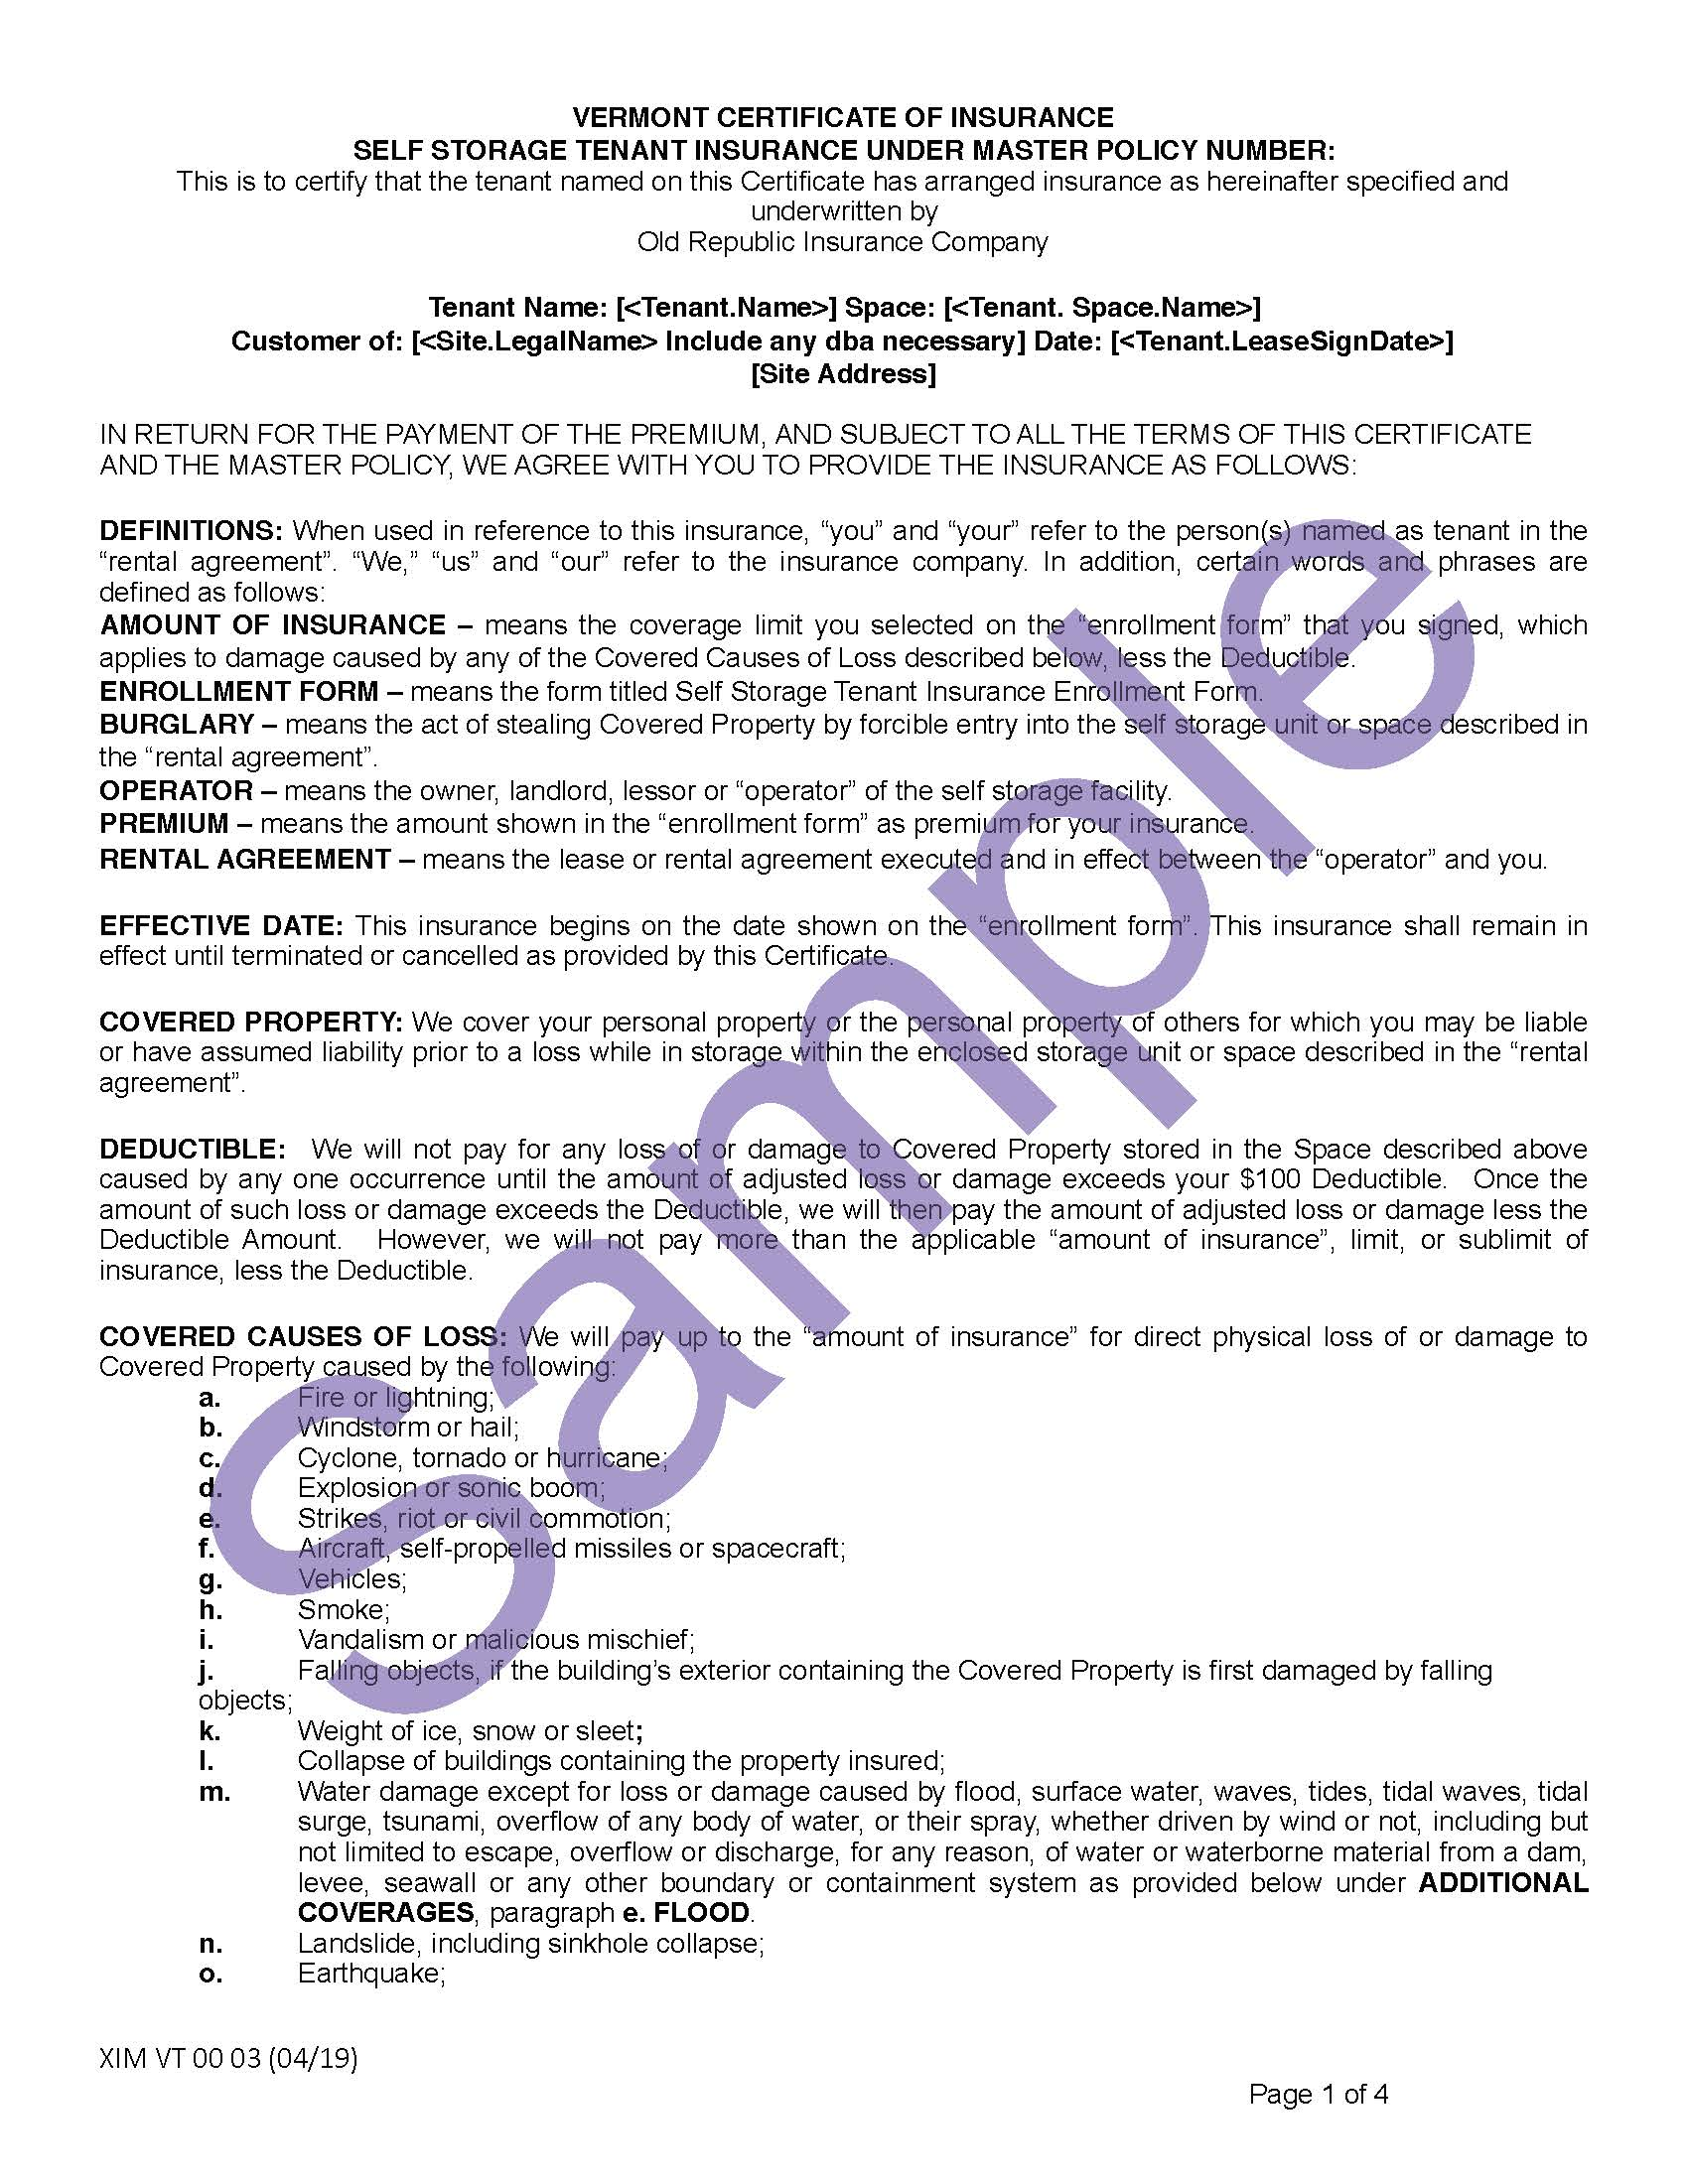 XIM VT 00 03 04 19 Vermont Certificate of InsuranceSample_Page_1.jpg